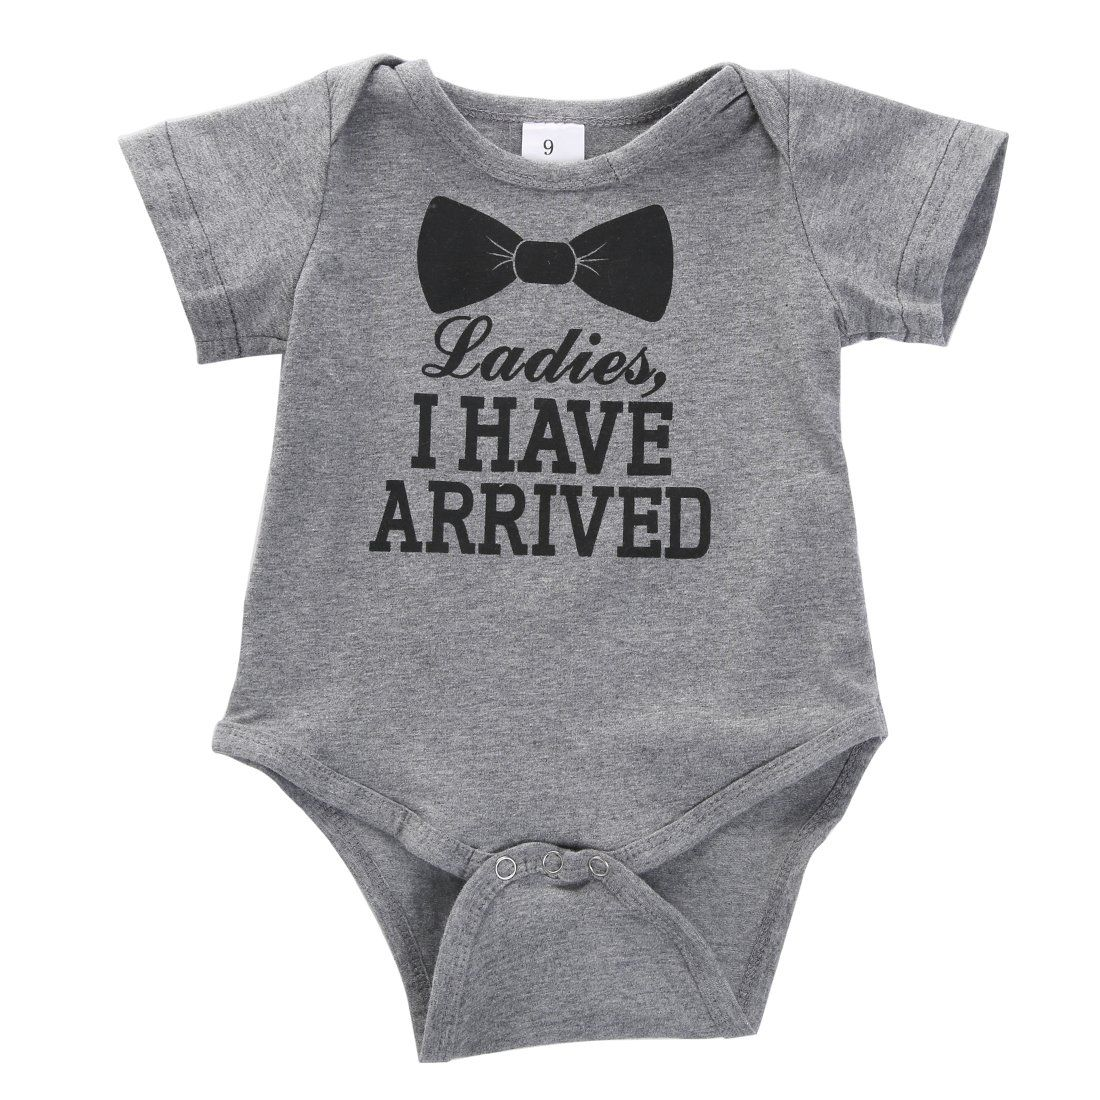 ce8b2576cfbb Newborn Baby Boys Girls Bowtie Short Sleeve Romper Bodysuit Playsuit  Outfits 03 Months Gray    You can get additional details at the image link.